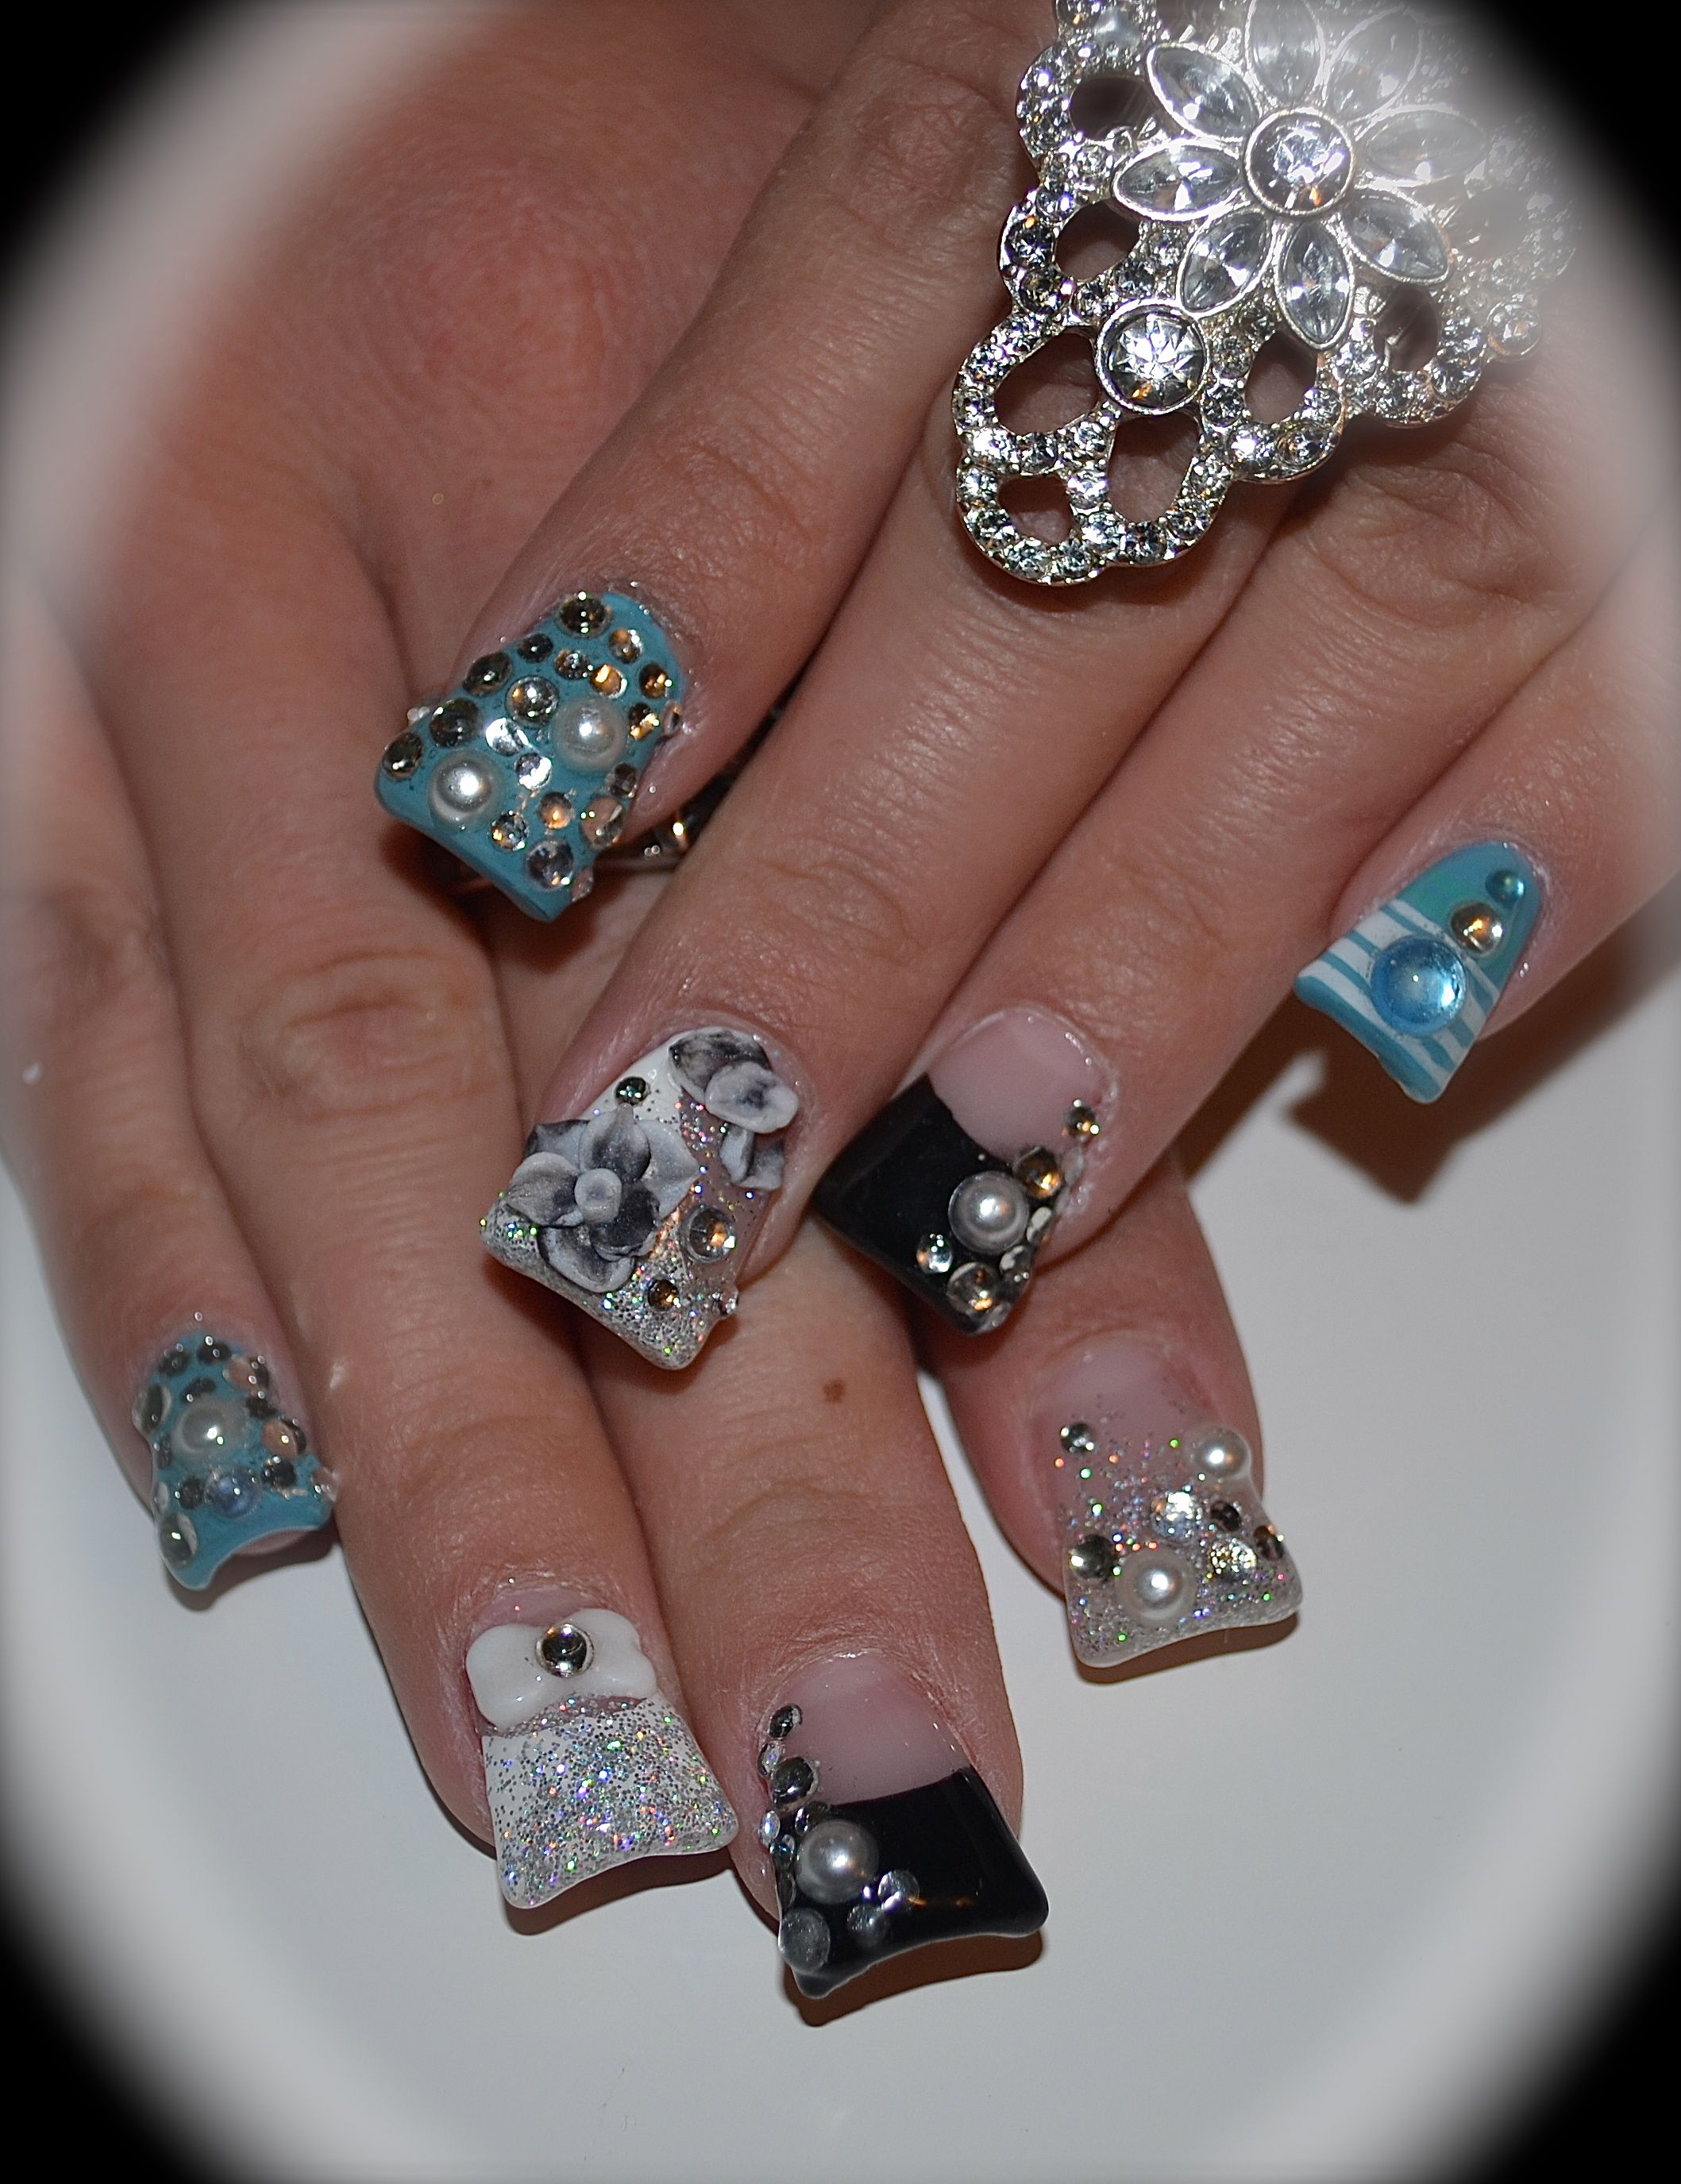 Acrylic Nails With Blue Themed Nail Designs Including Rhinestones